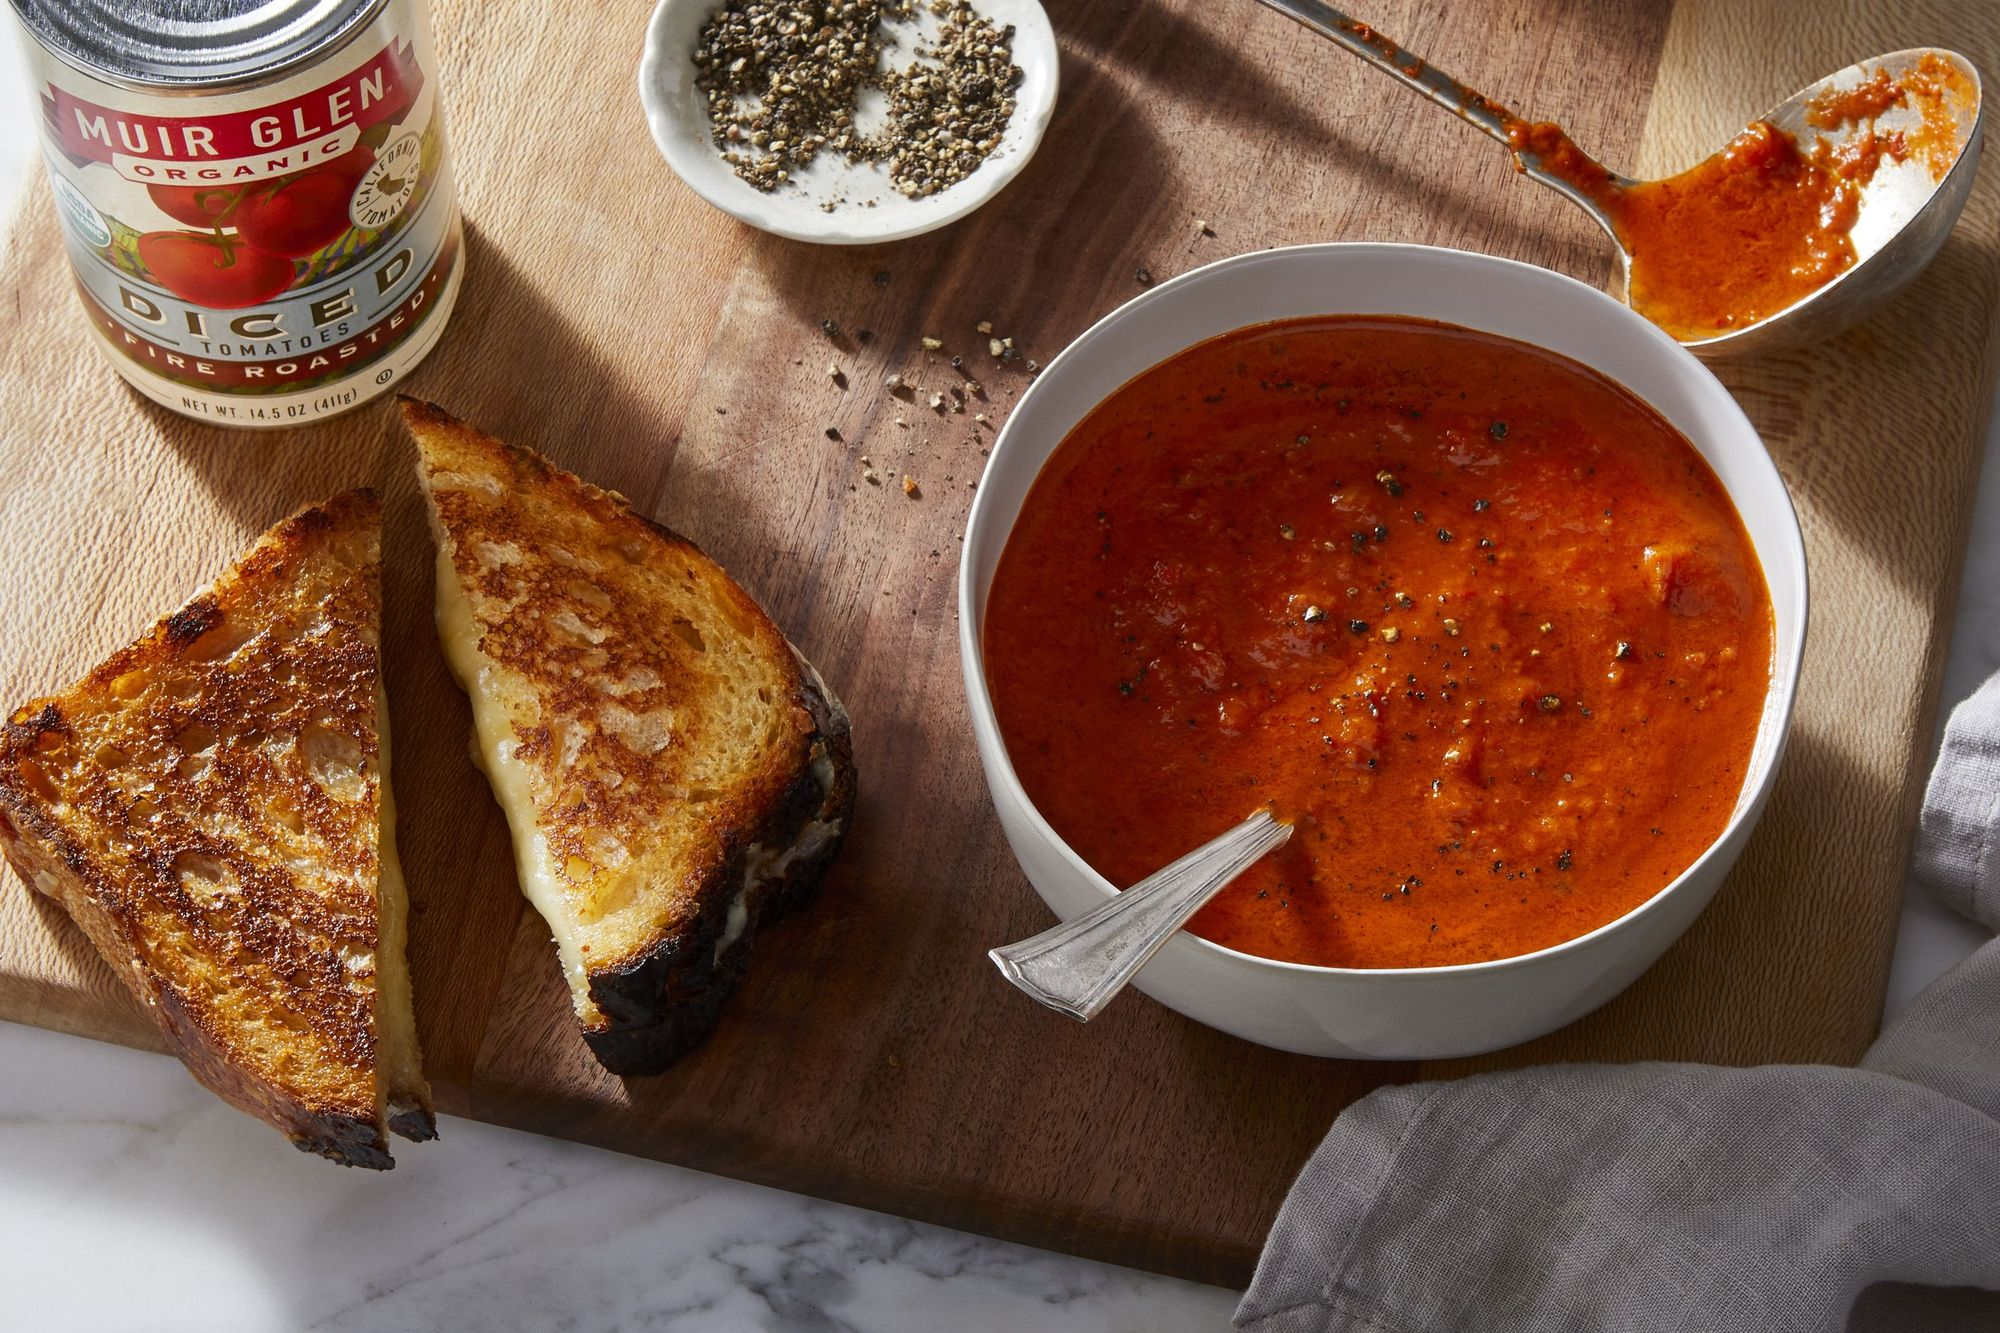 Souped-Up Tomato Soup